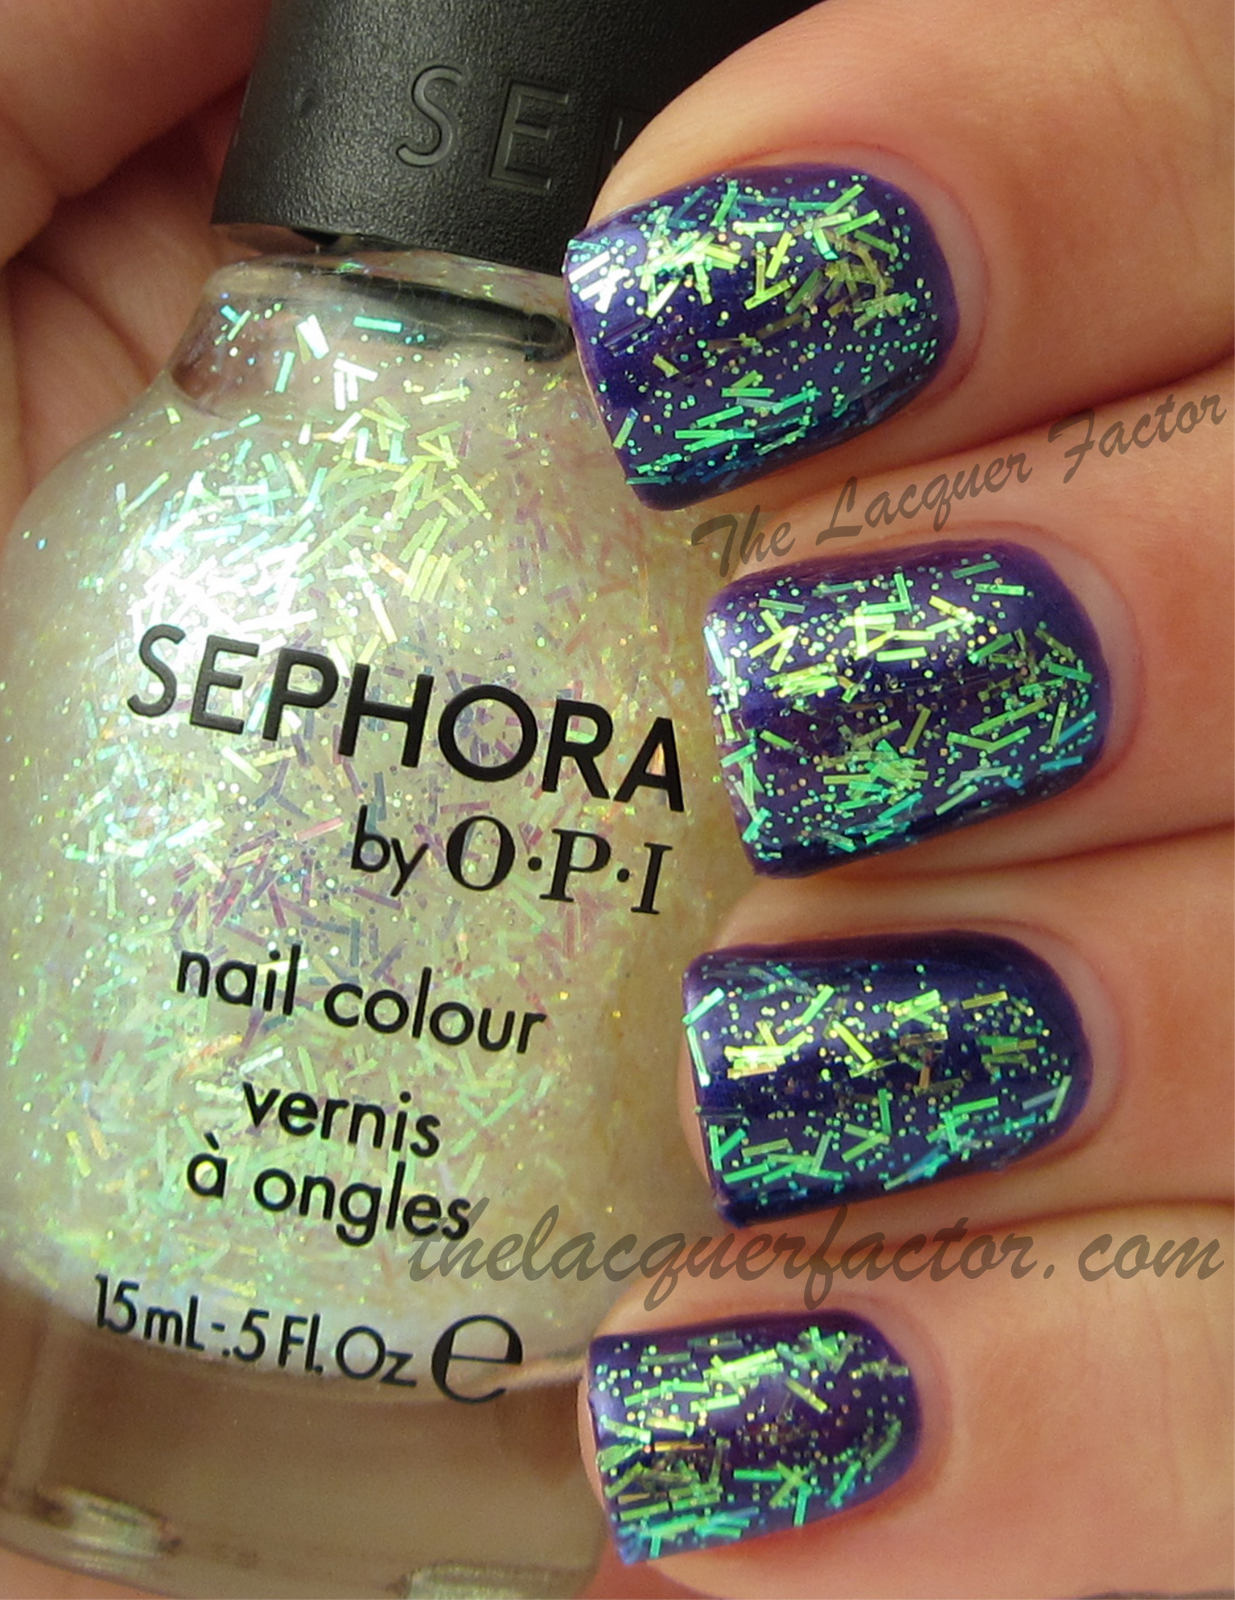 Sephora by @OPI Nail Hollywood If I Could | The Lacquer Factor Blog ...